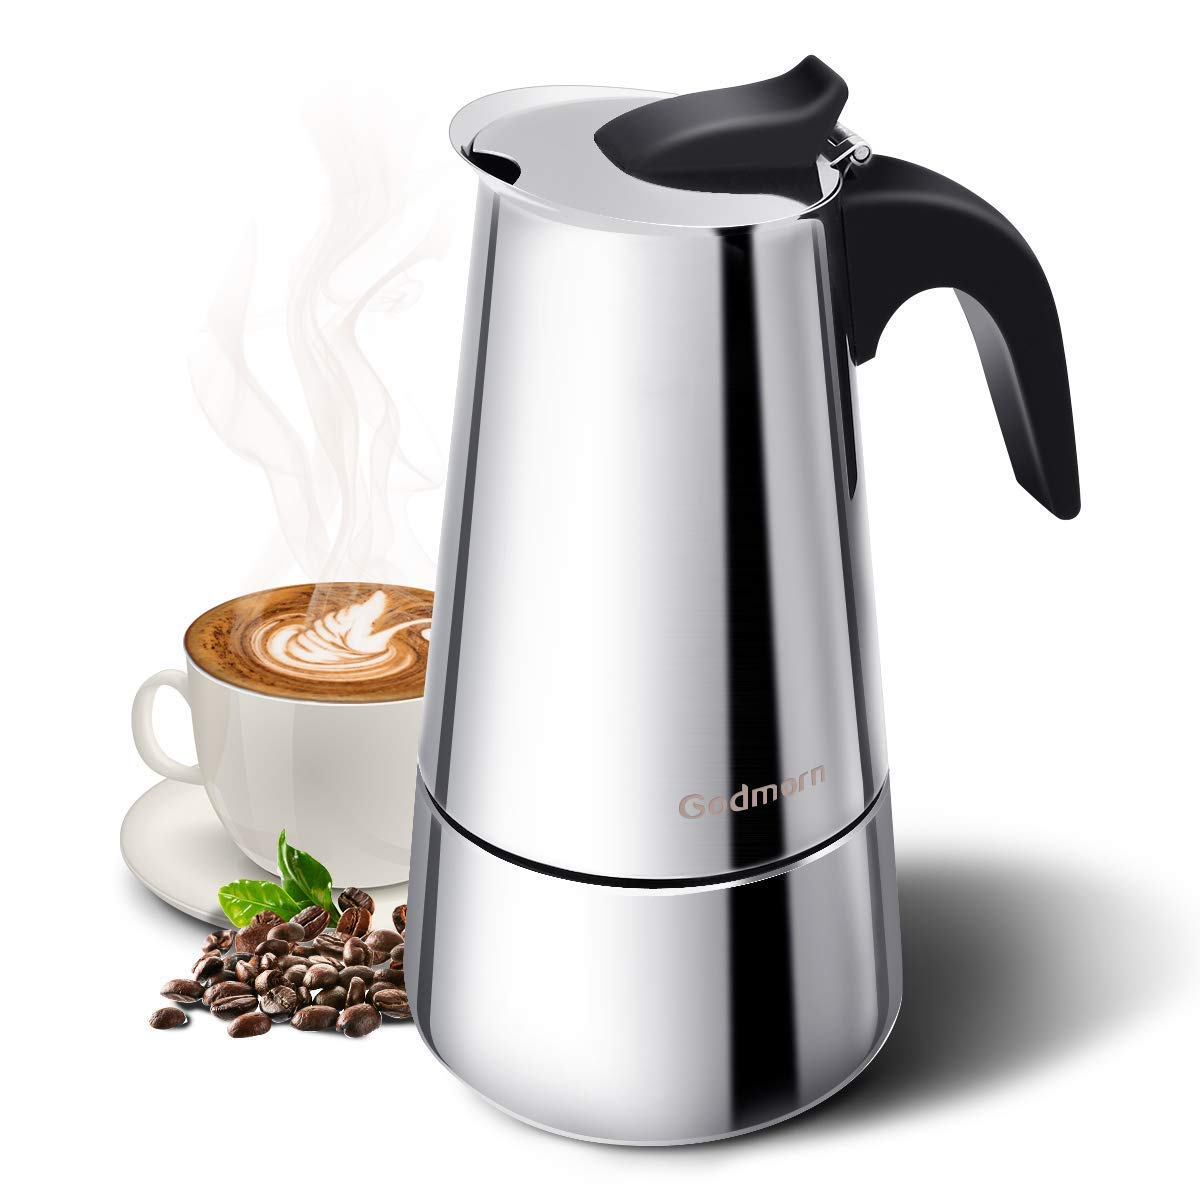 Godmorn Stovetop Espresso Maker, Moka Pot, Coffee Maker: Classic Cafe Maker made of 430 stainless steel for 6 cups (300 ml), suitable for induction cookers (espresso cooker)